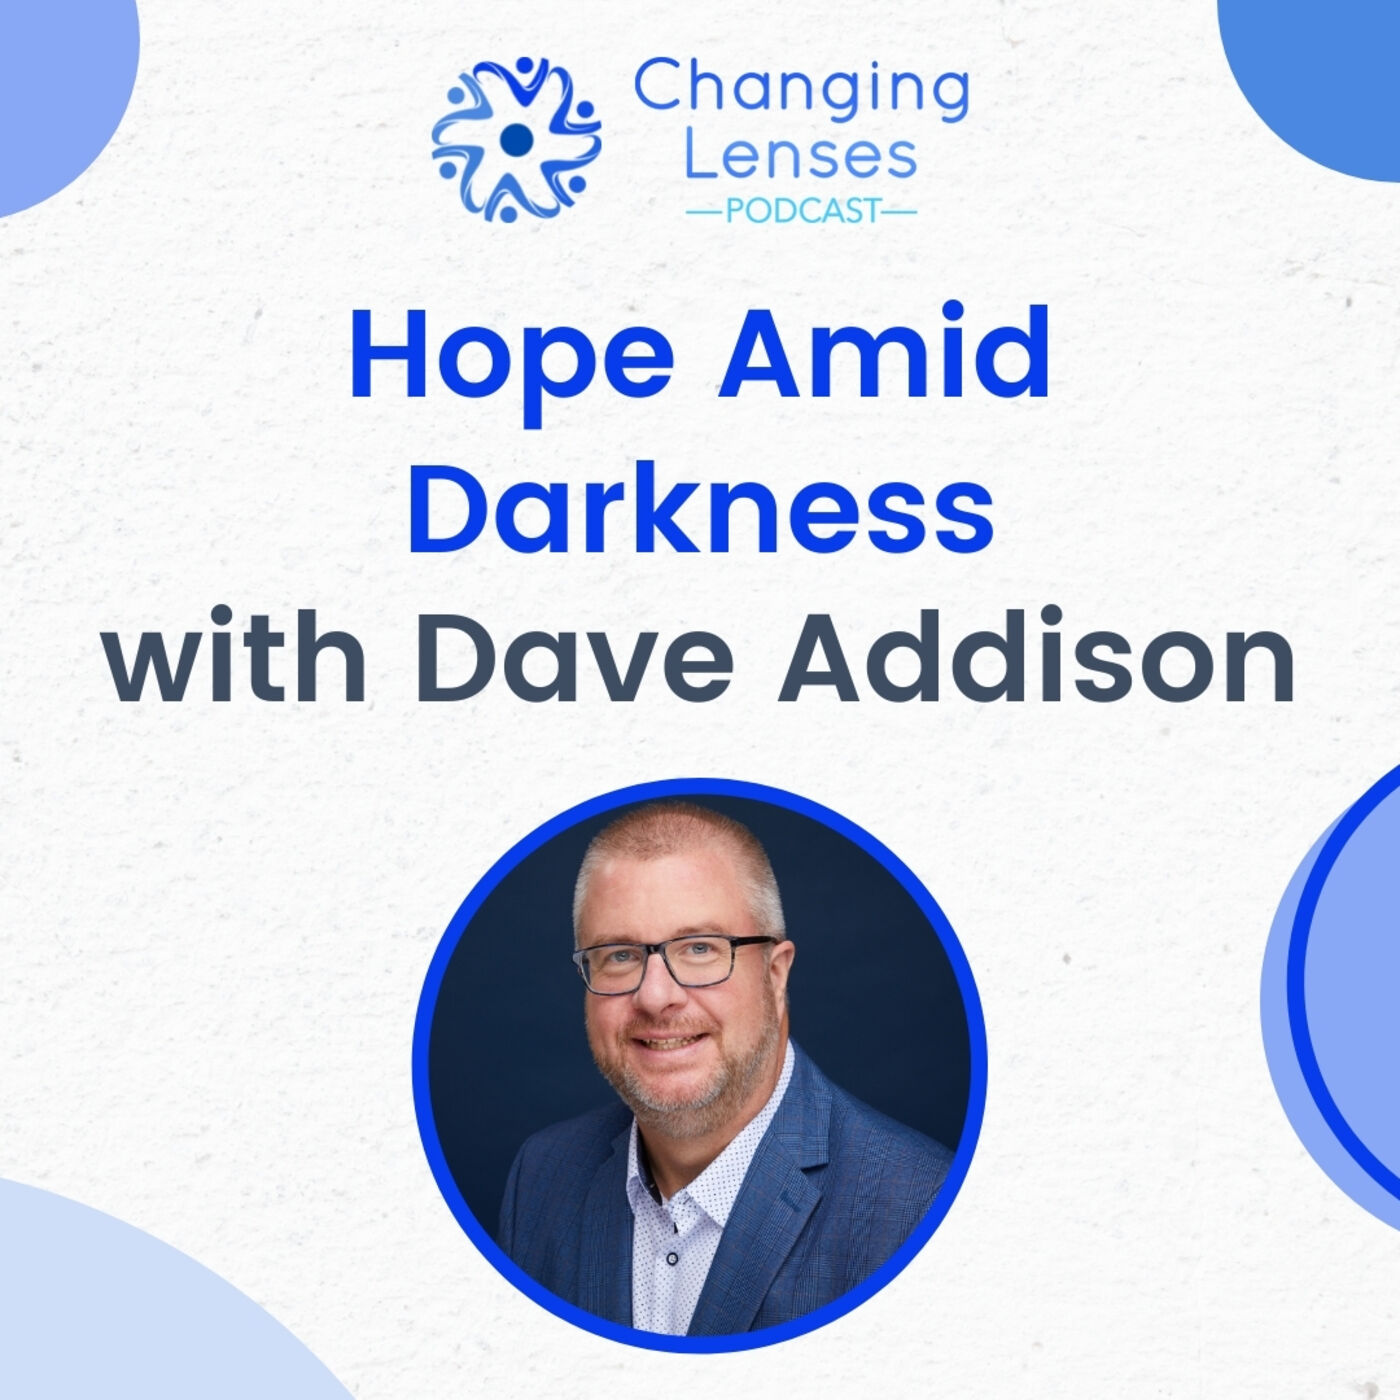 Ep04: Hope Amid Darkness, with Dave Addison